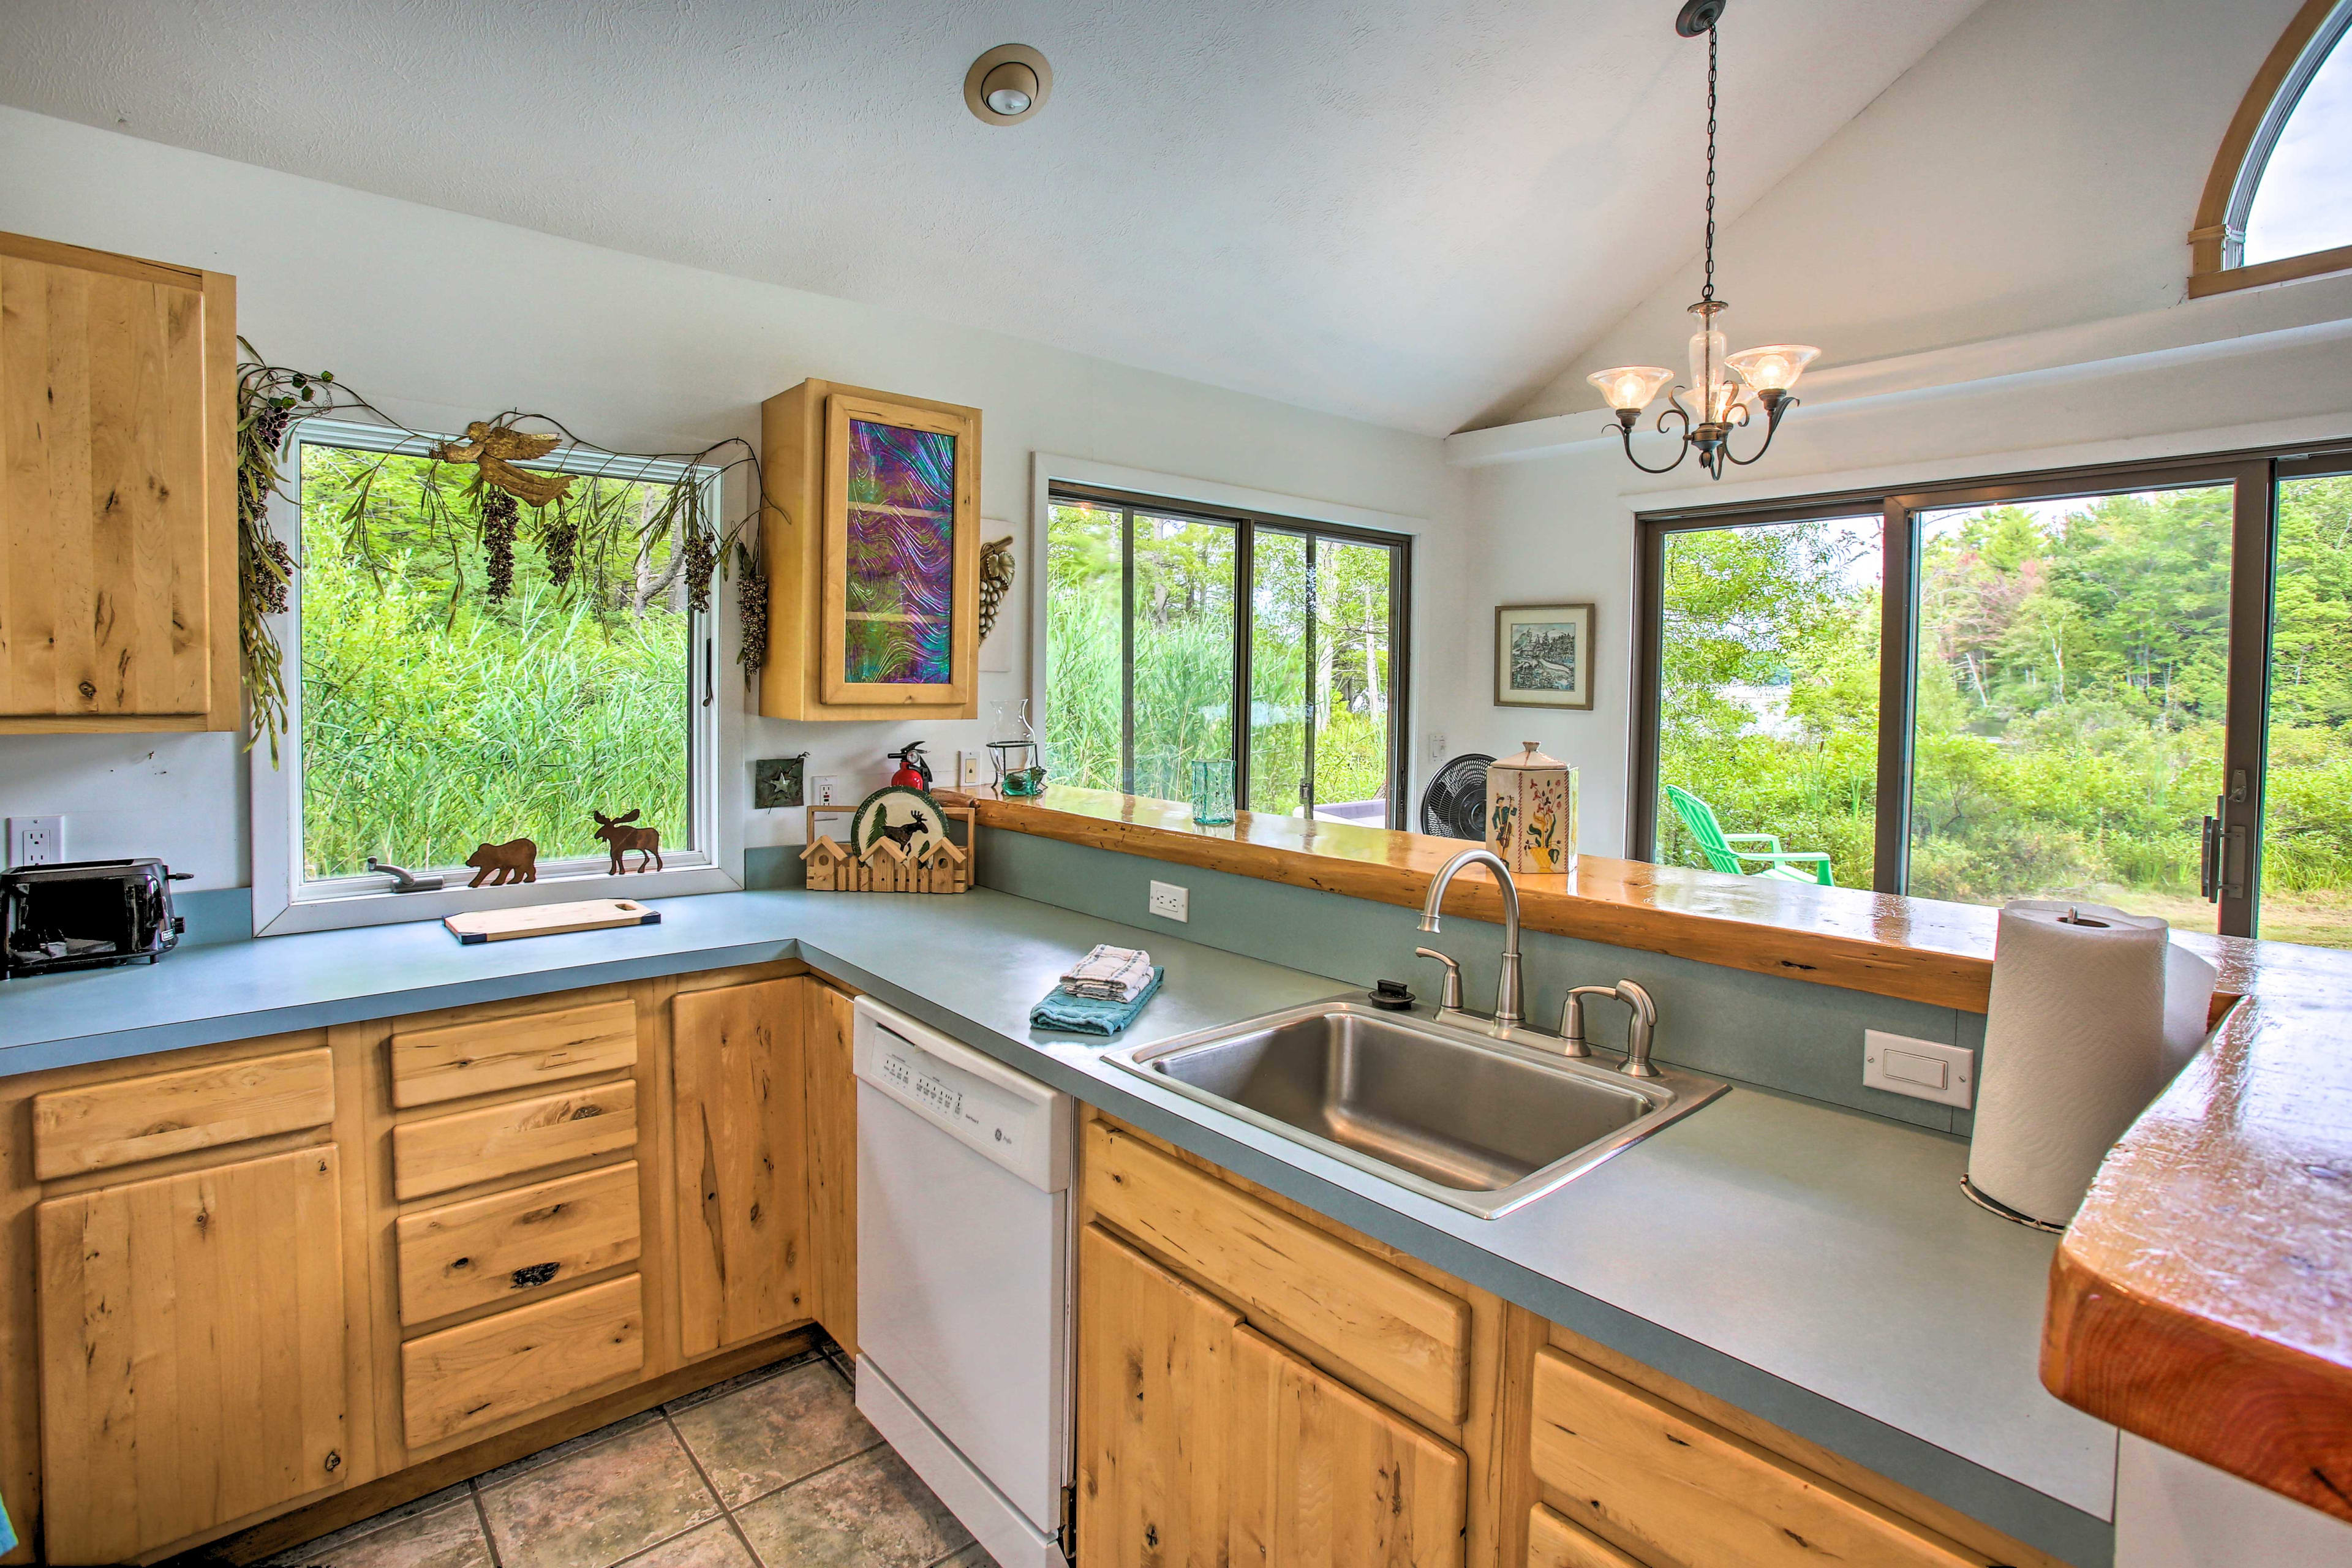 Ample counter space makes meal prep a breeze!